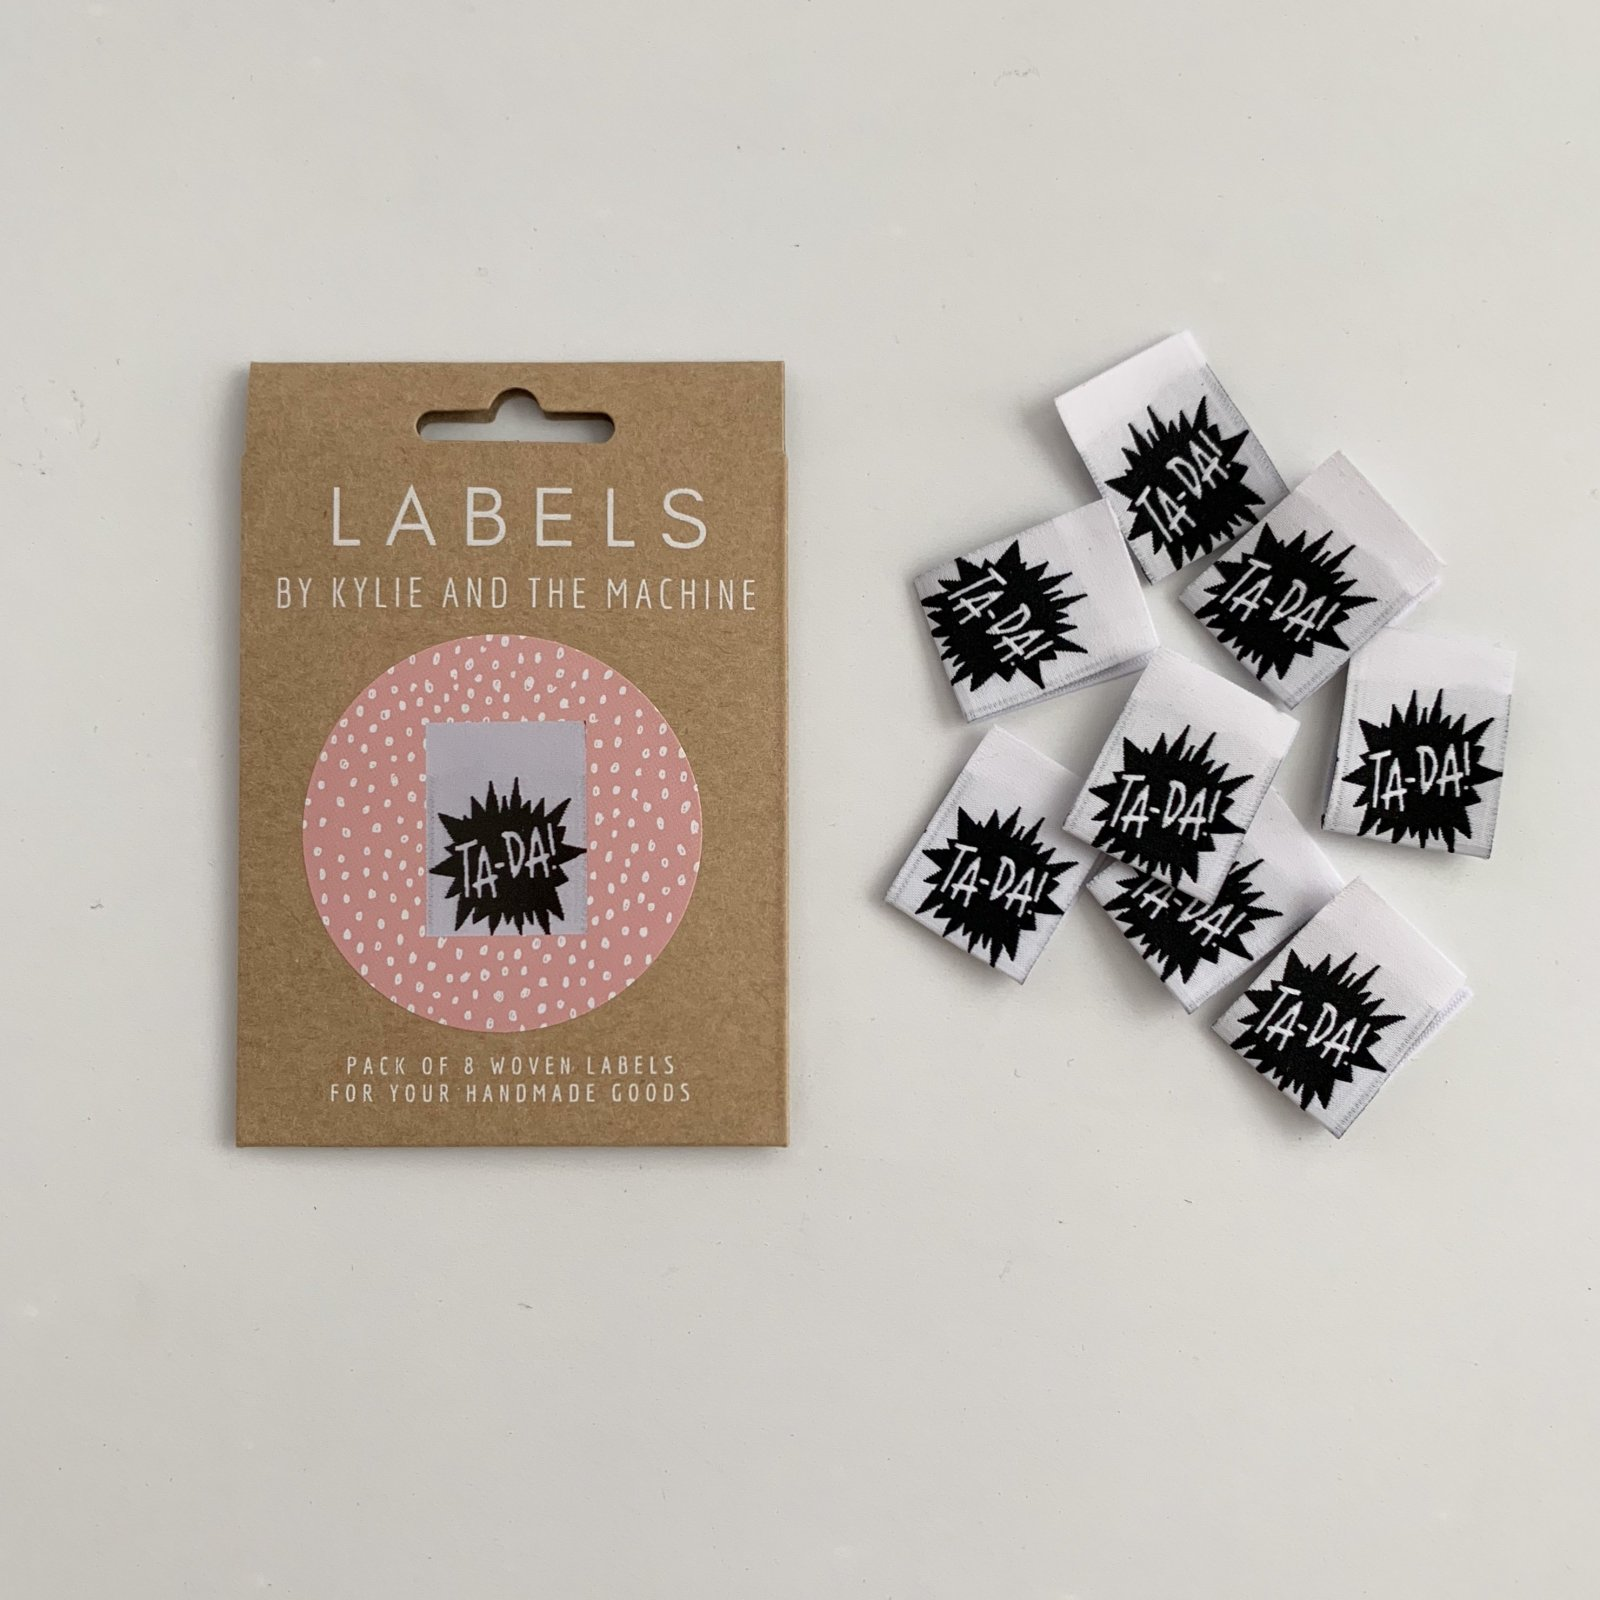 TA-DA! Woven Sewing Labels by Kylie and the Machine